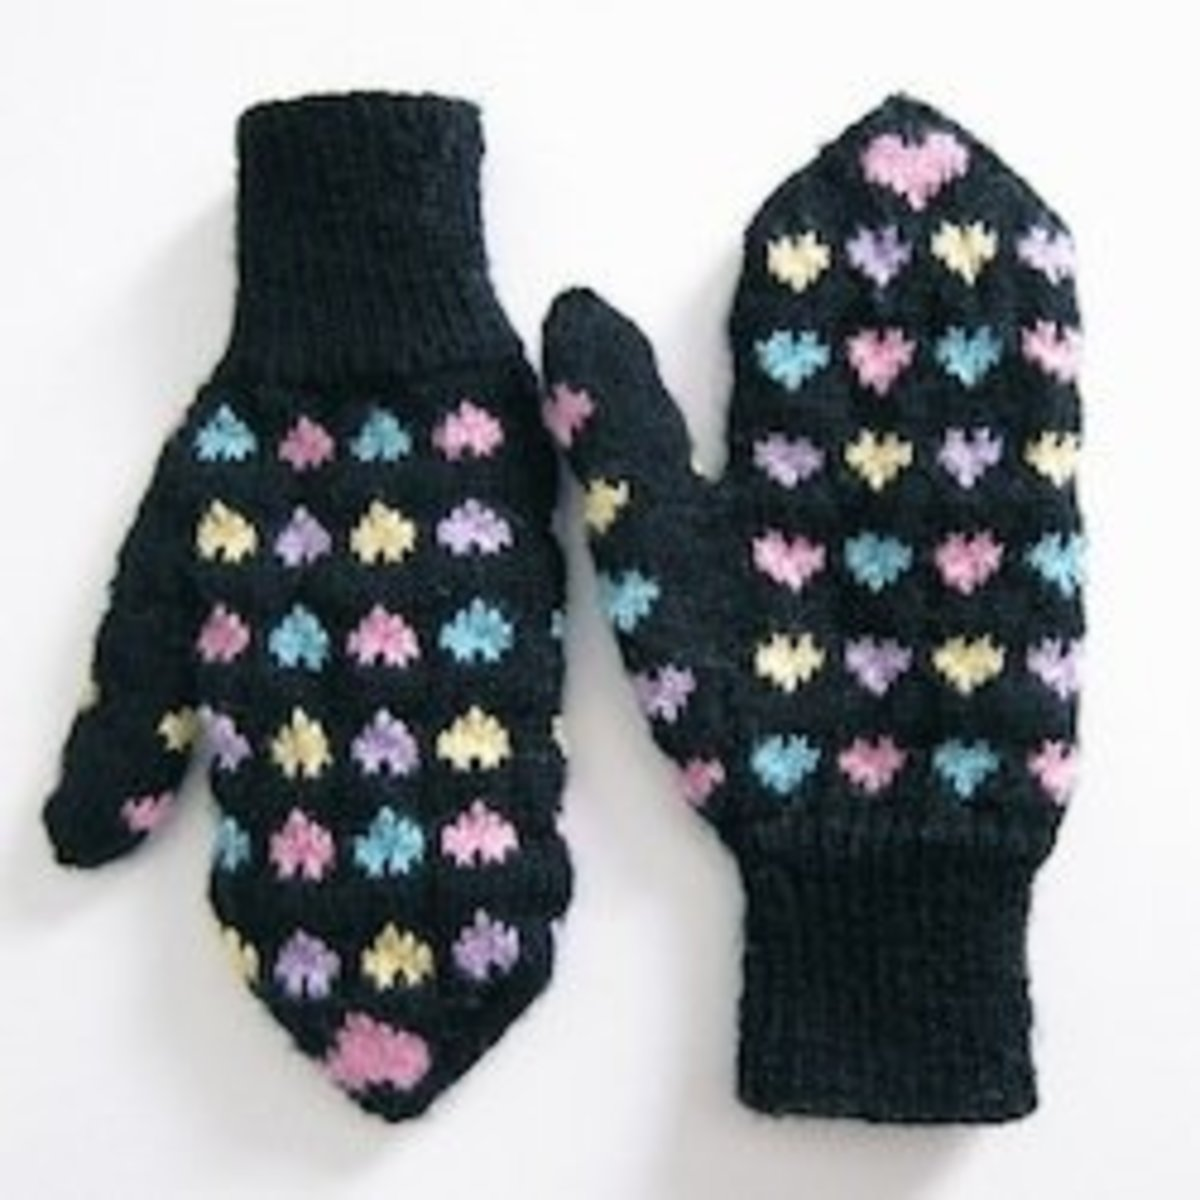 Sweet Heart Mittens Free knitting mitten patterns are the most useful of all free knitting patterns because they keep your hands nice and toasty. After all, frostbitten fingers can't stitch very well.